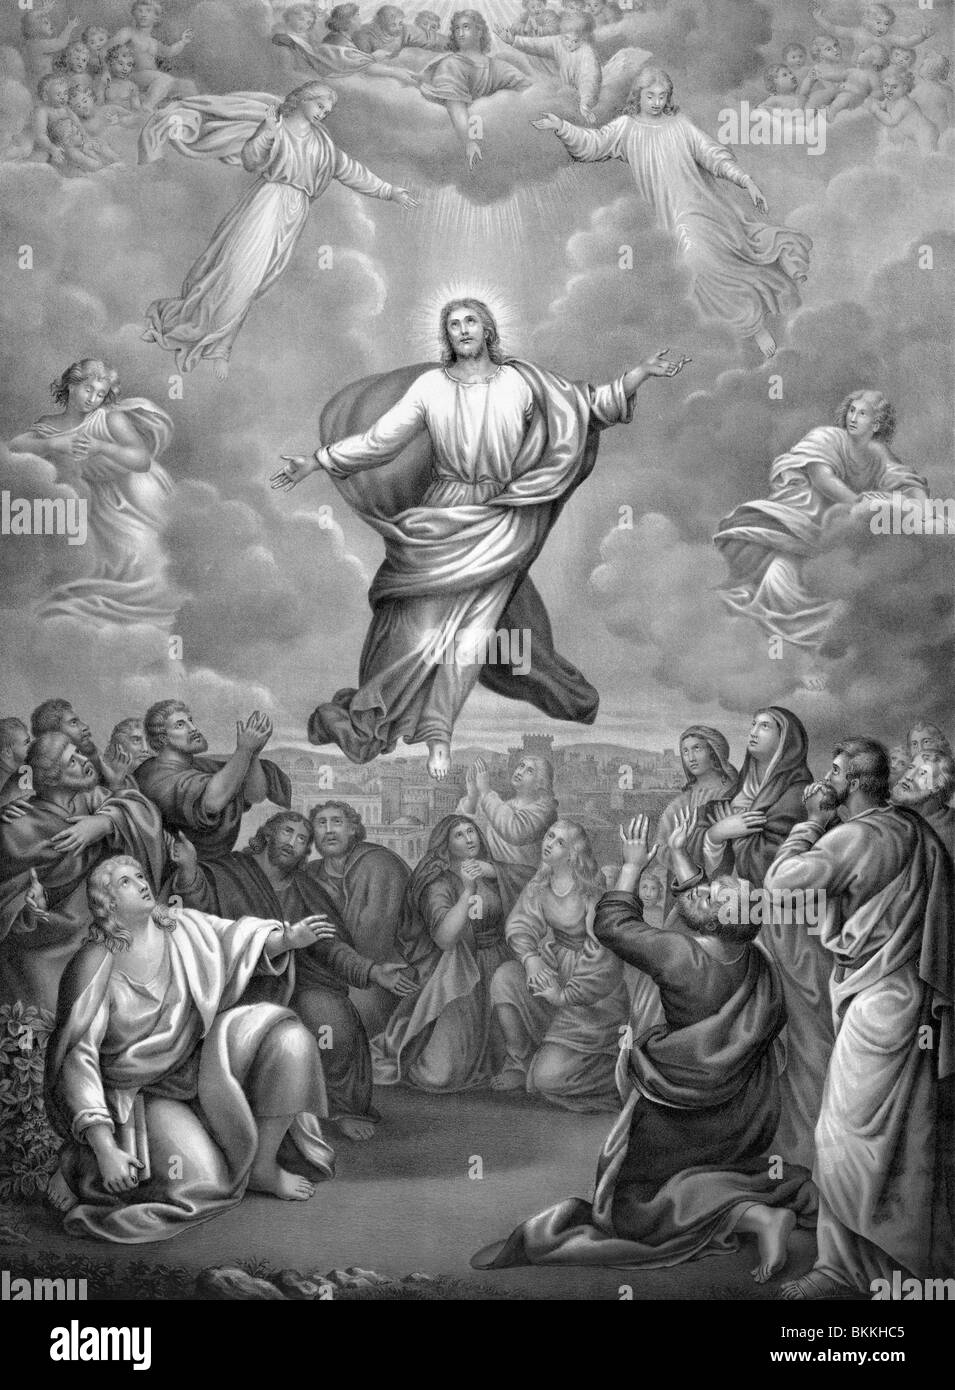 vintage lithograph print circa 1884 depicting the ascension of